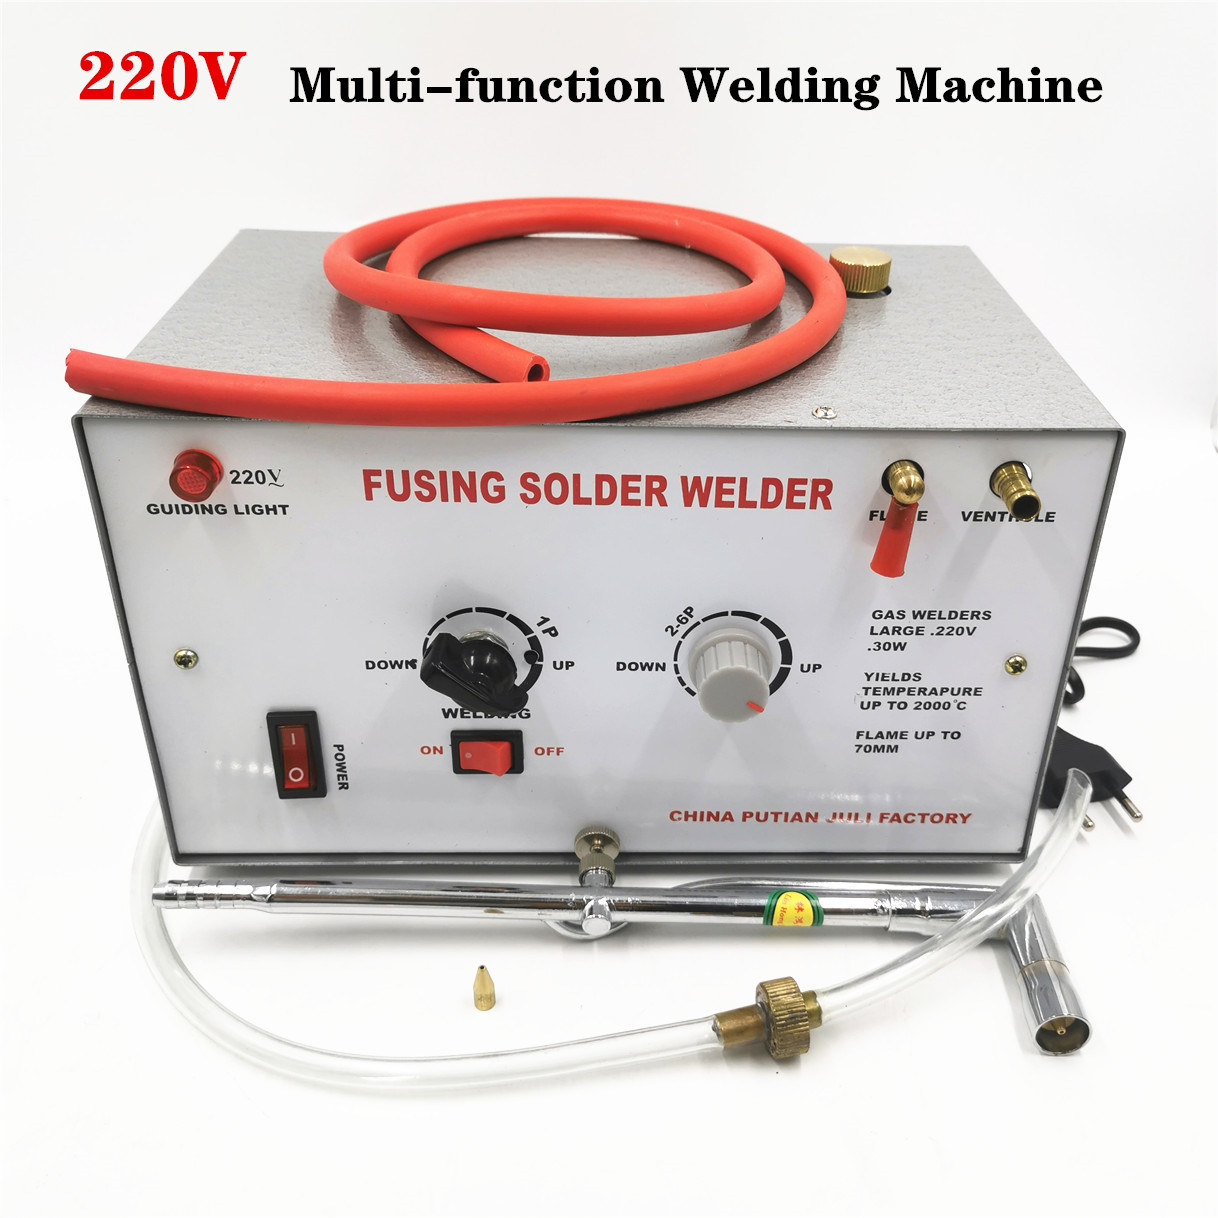 30W 220V Welding  Melting Machine Gold Silver Welding Melting   Soldering Maximum Temperature Up To 2000 Jewelry Welding Tools